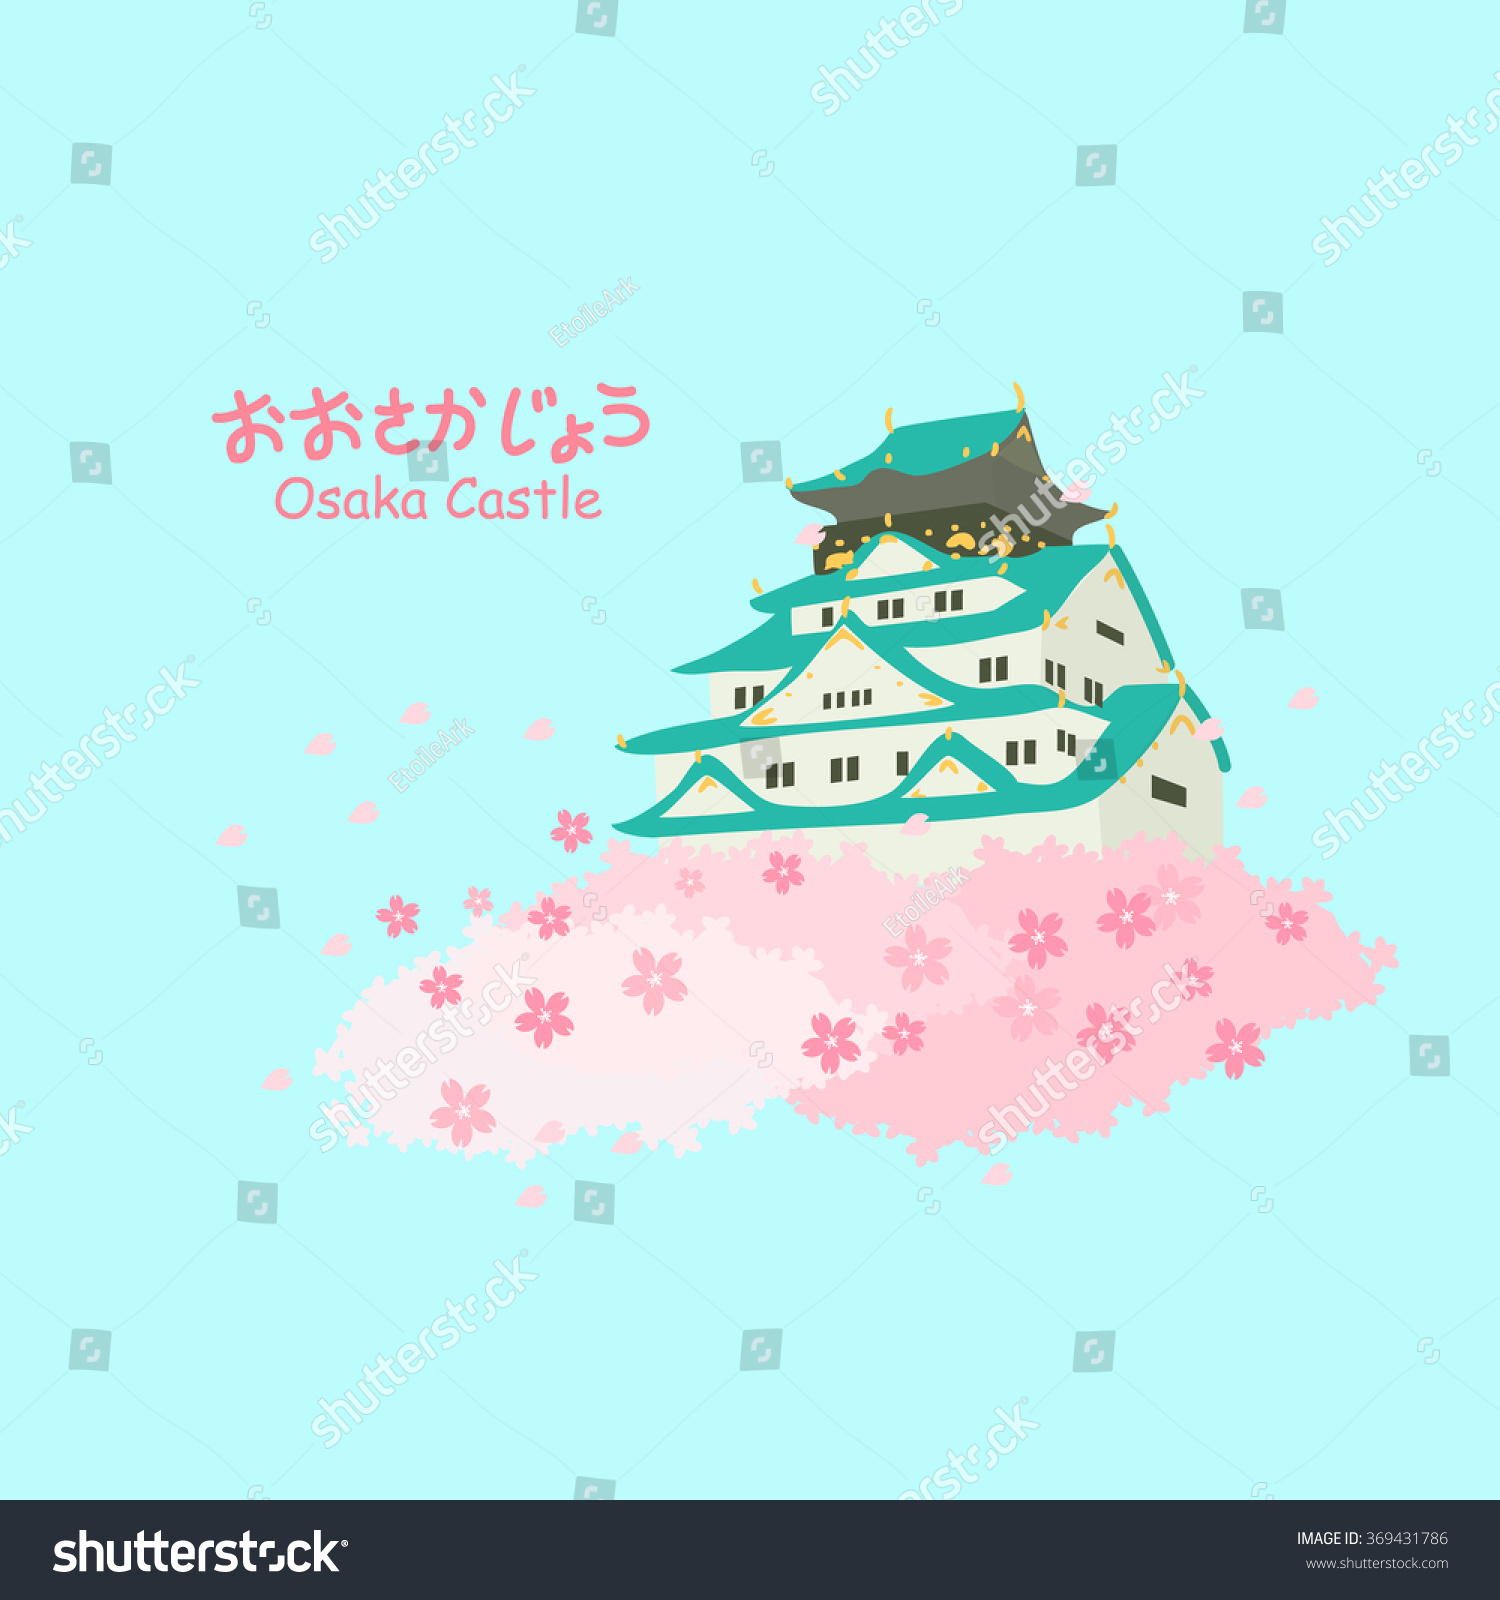 Japan osaka castle with cherry blossom or sakura osaka castle on upper left in Japanese words